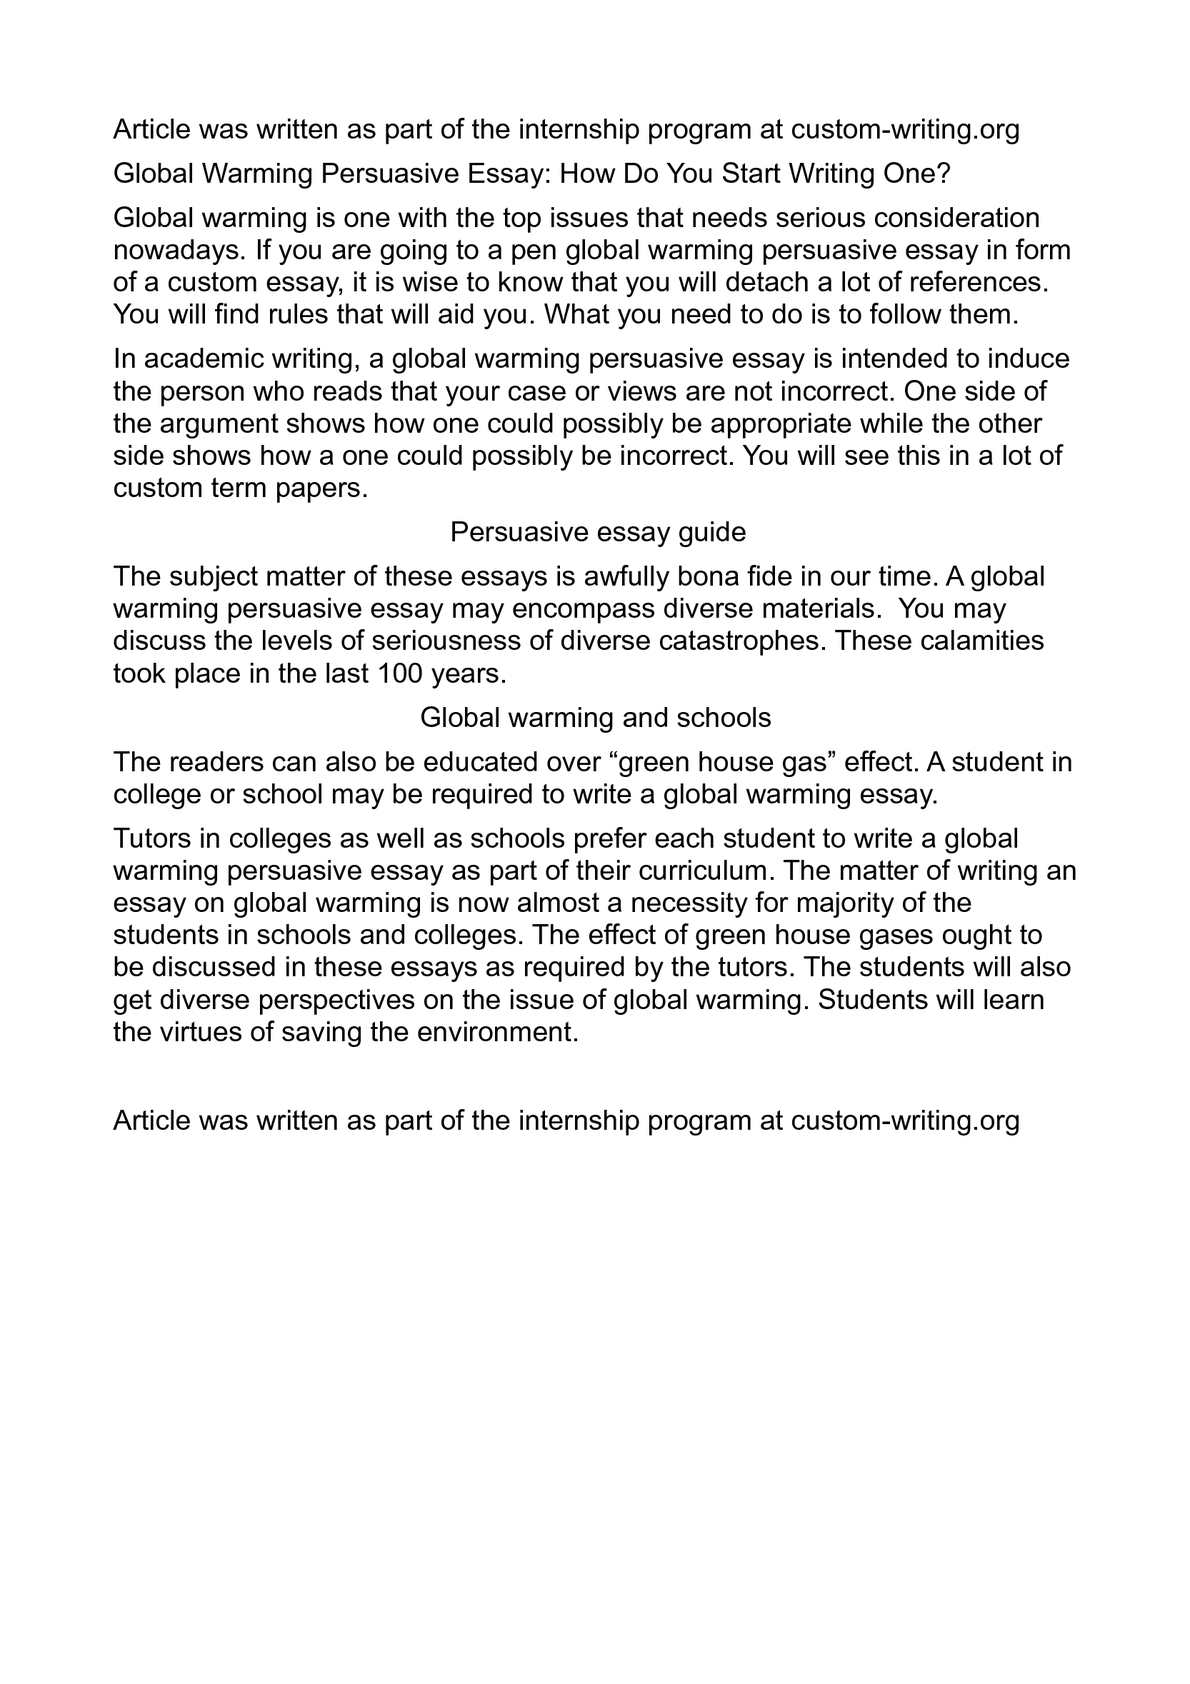 global warming persuasive essay how do you start  global warming persuasive essay how do you start writing one